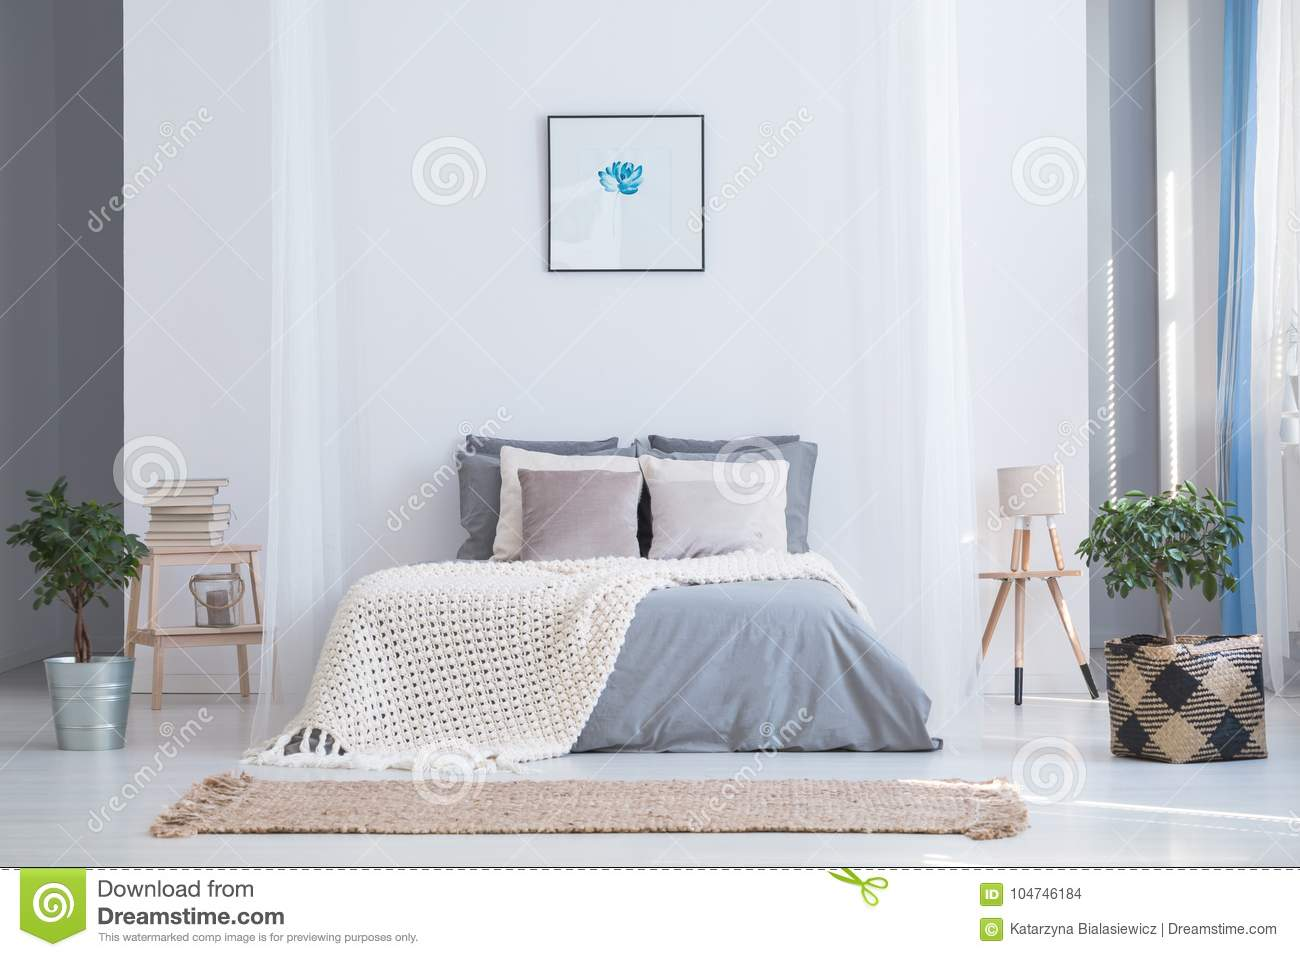 Balanced Bedroom Interior With Plants Stock Photo Image Of King